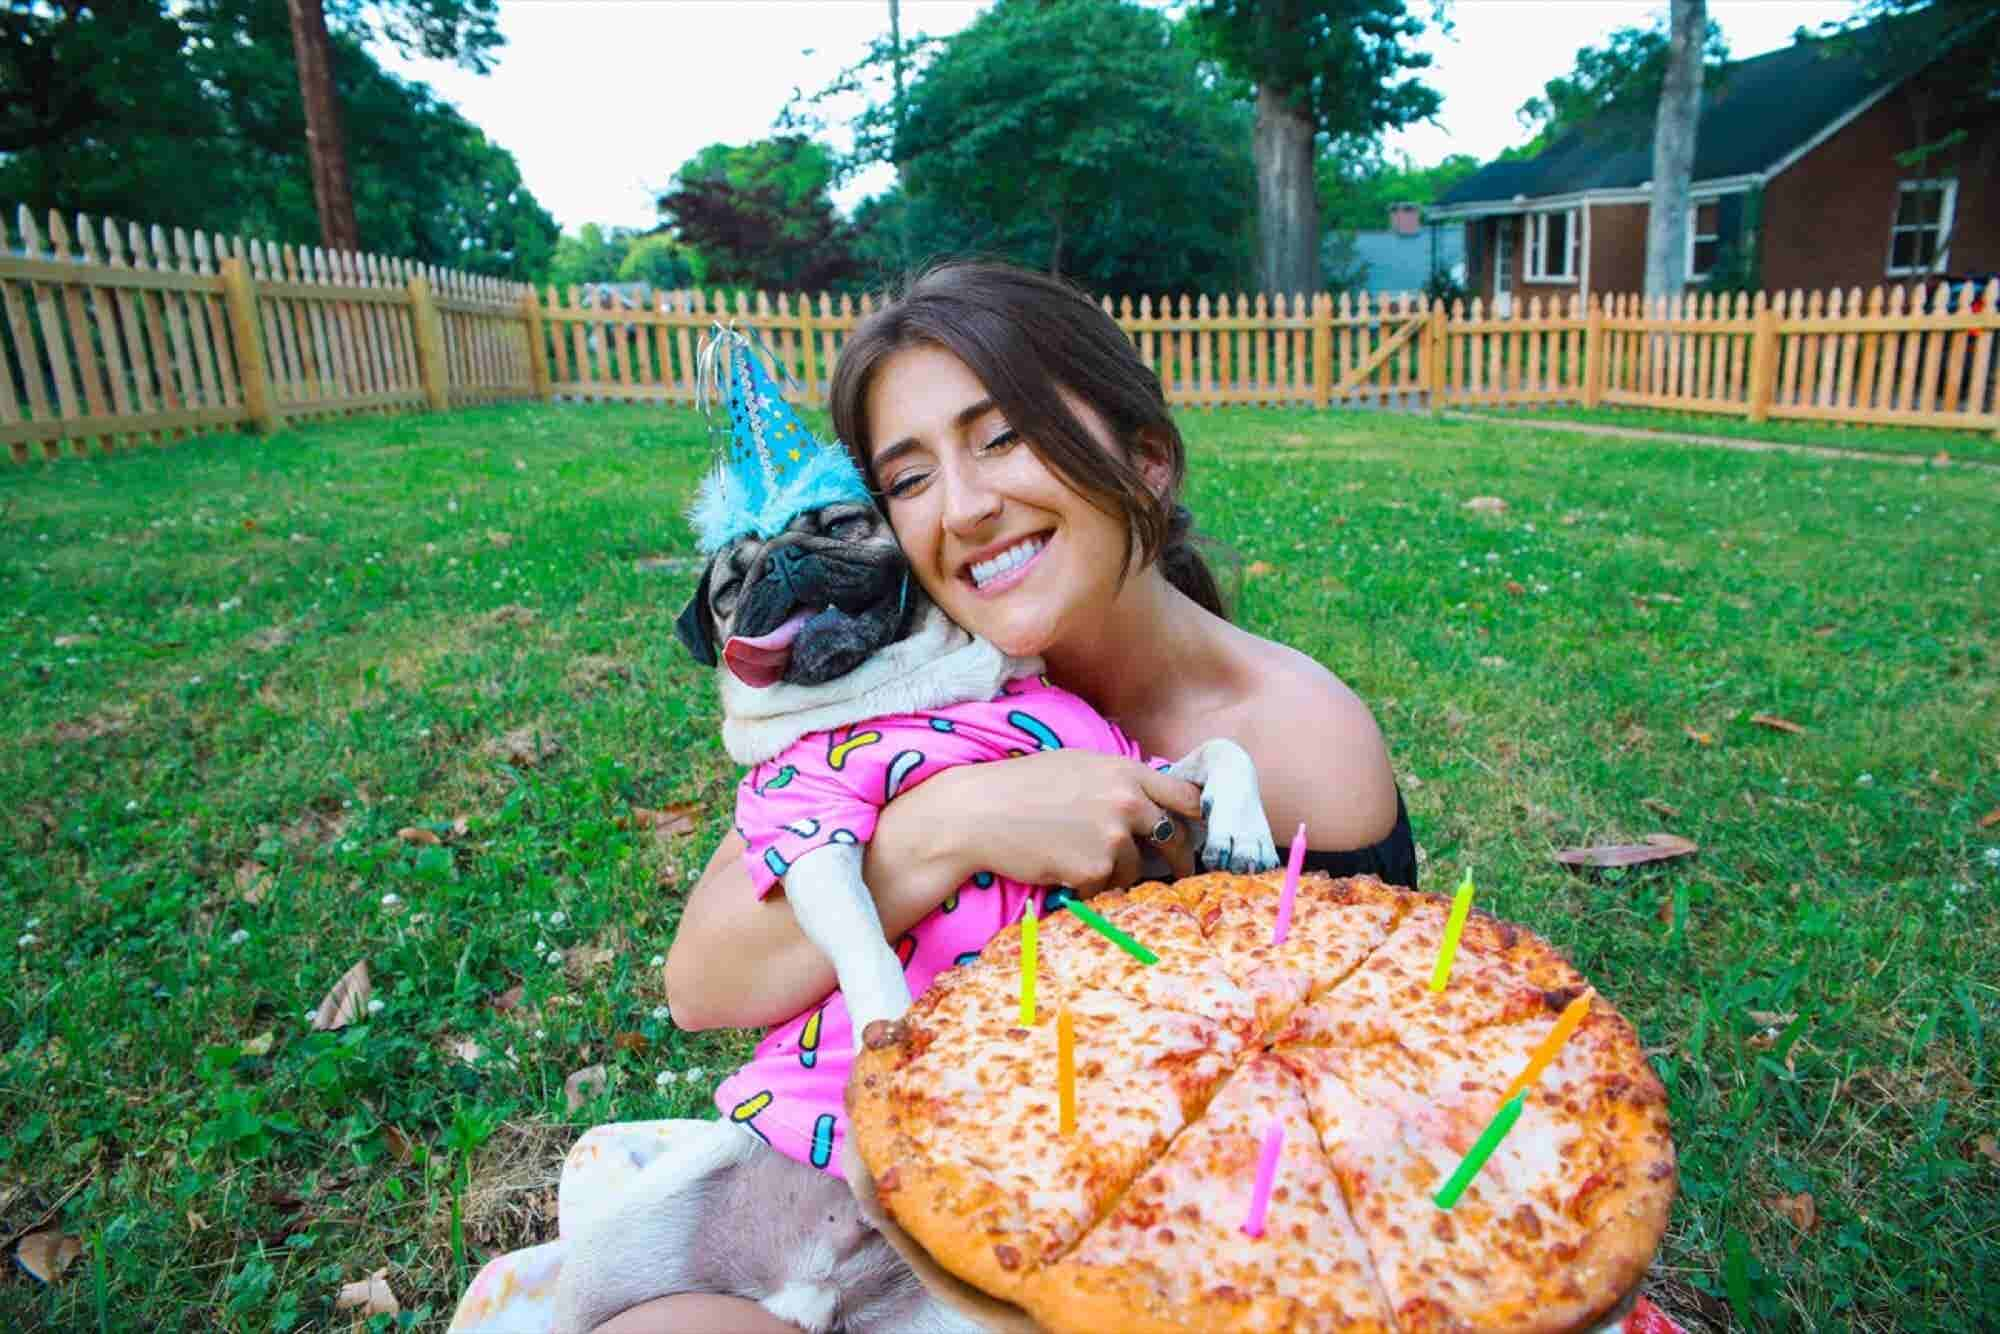 The Secrets of the Woman Who Quit Her Job and Made Her Pug an Instagra...